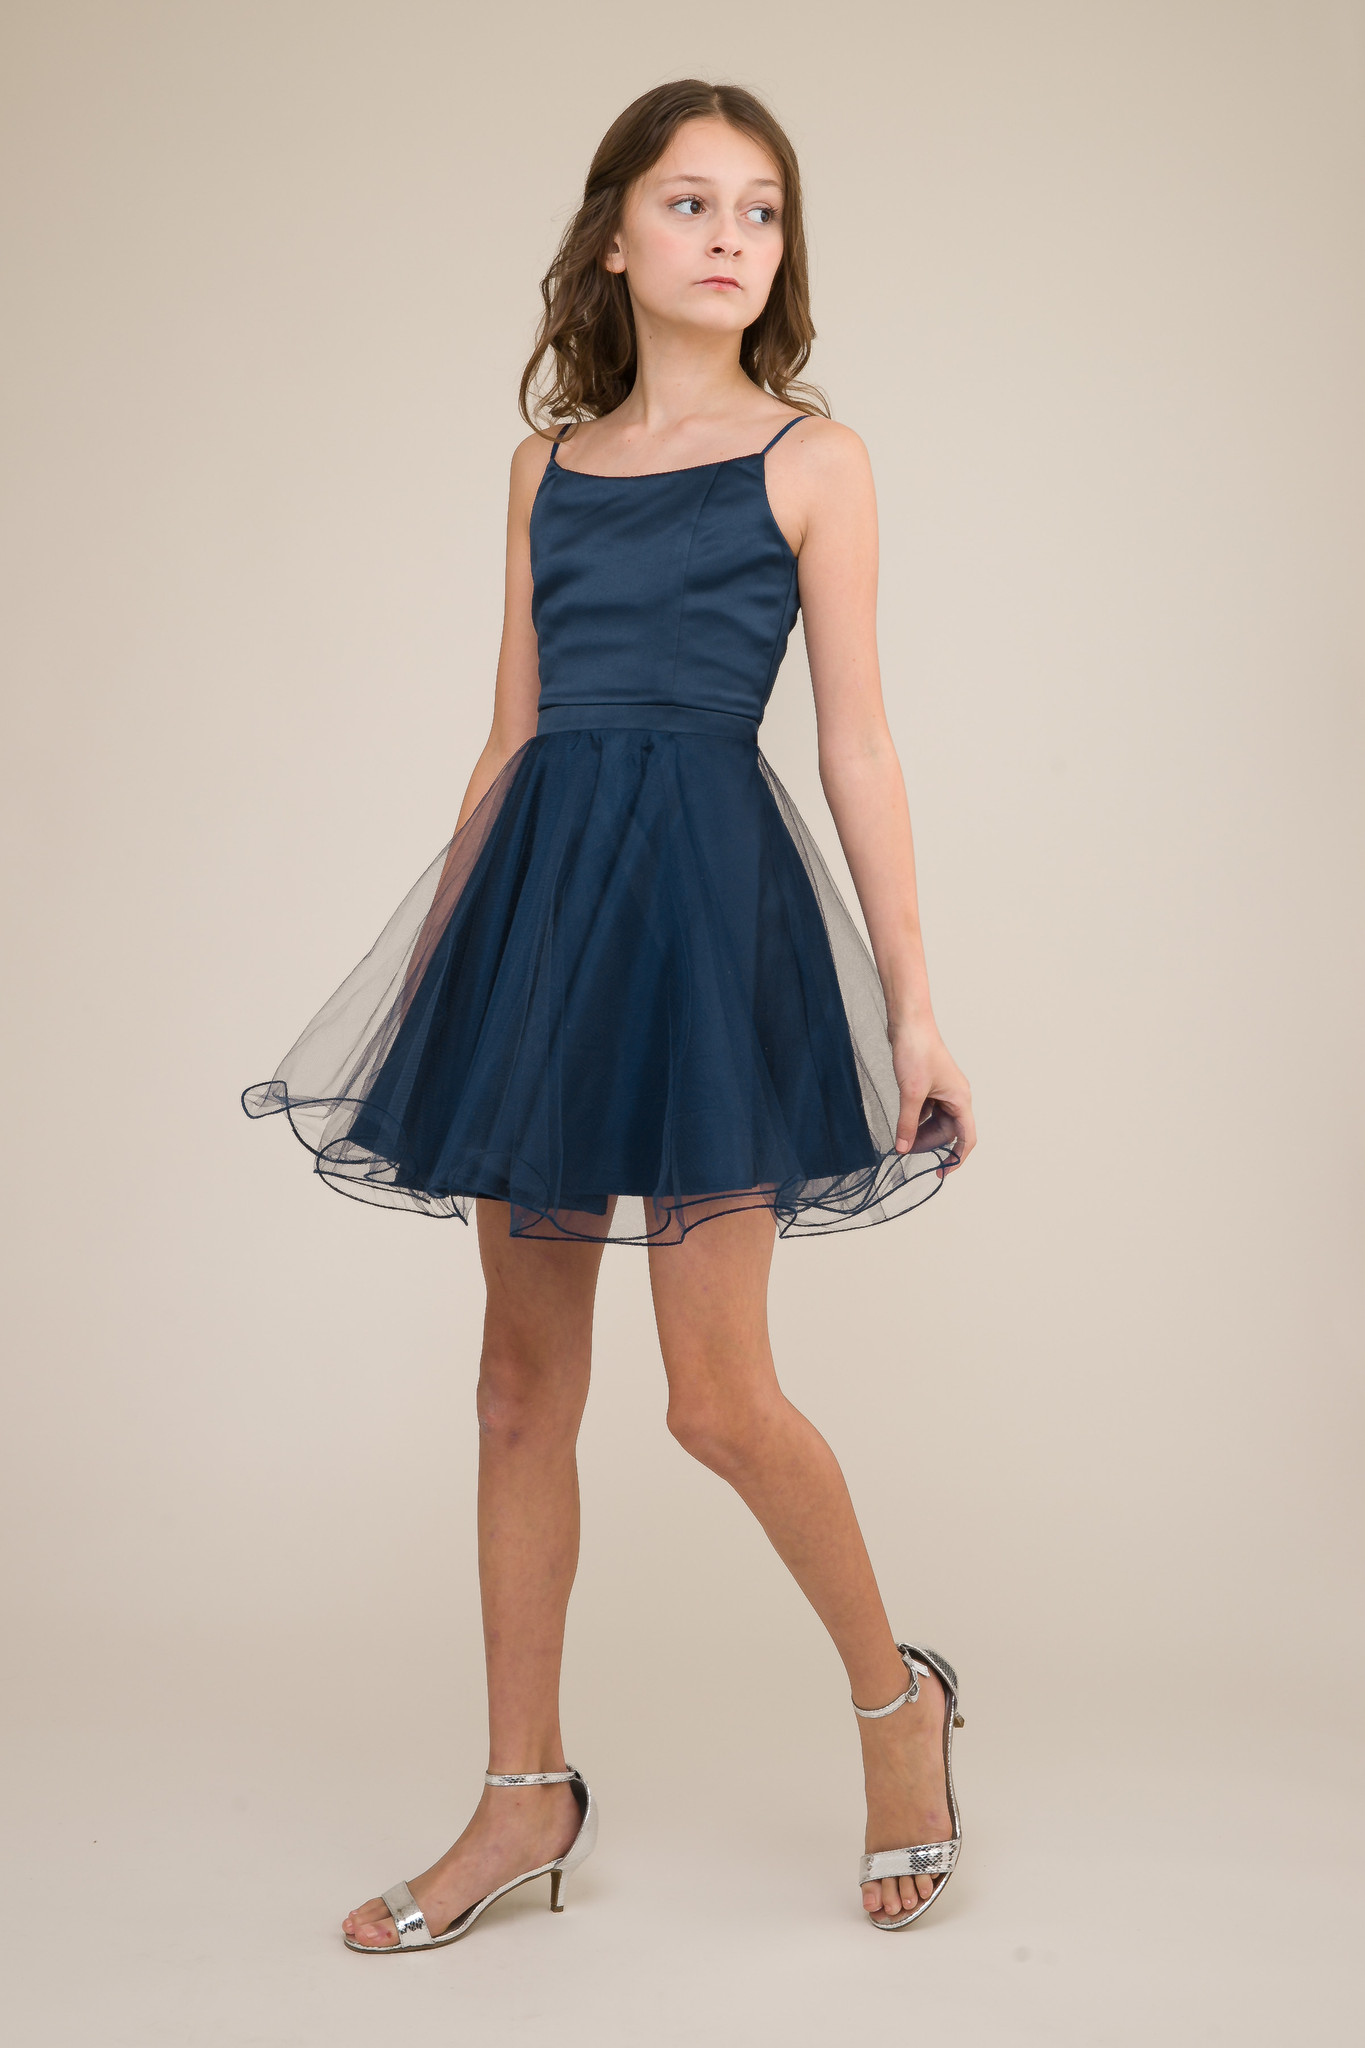 Short Satin and Tulle Dress in Navy.